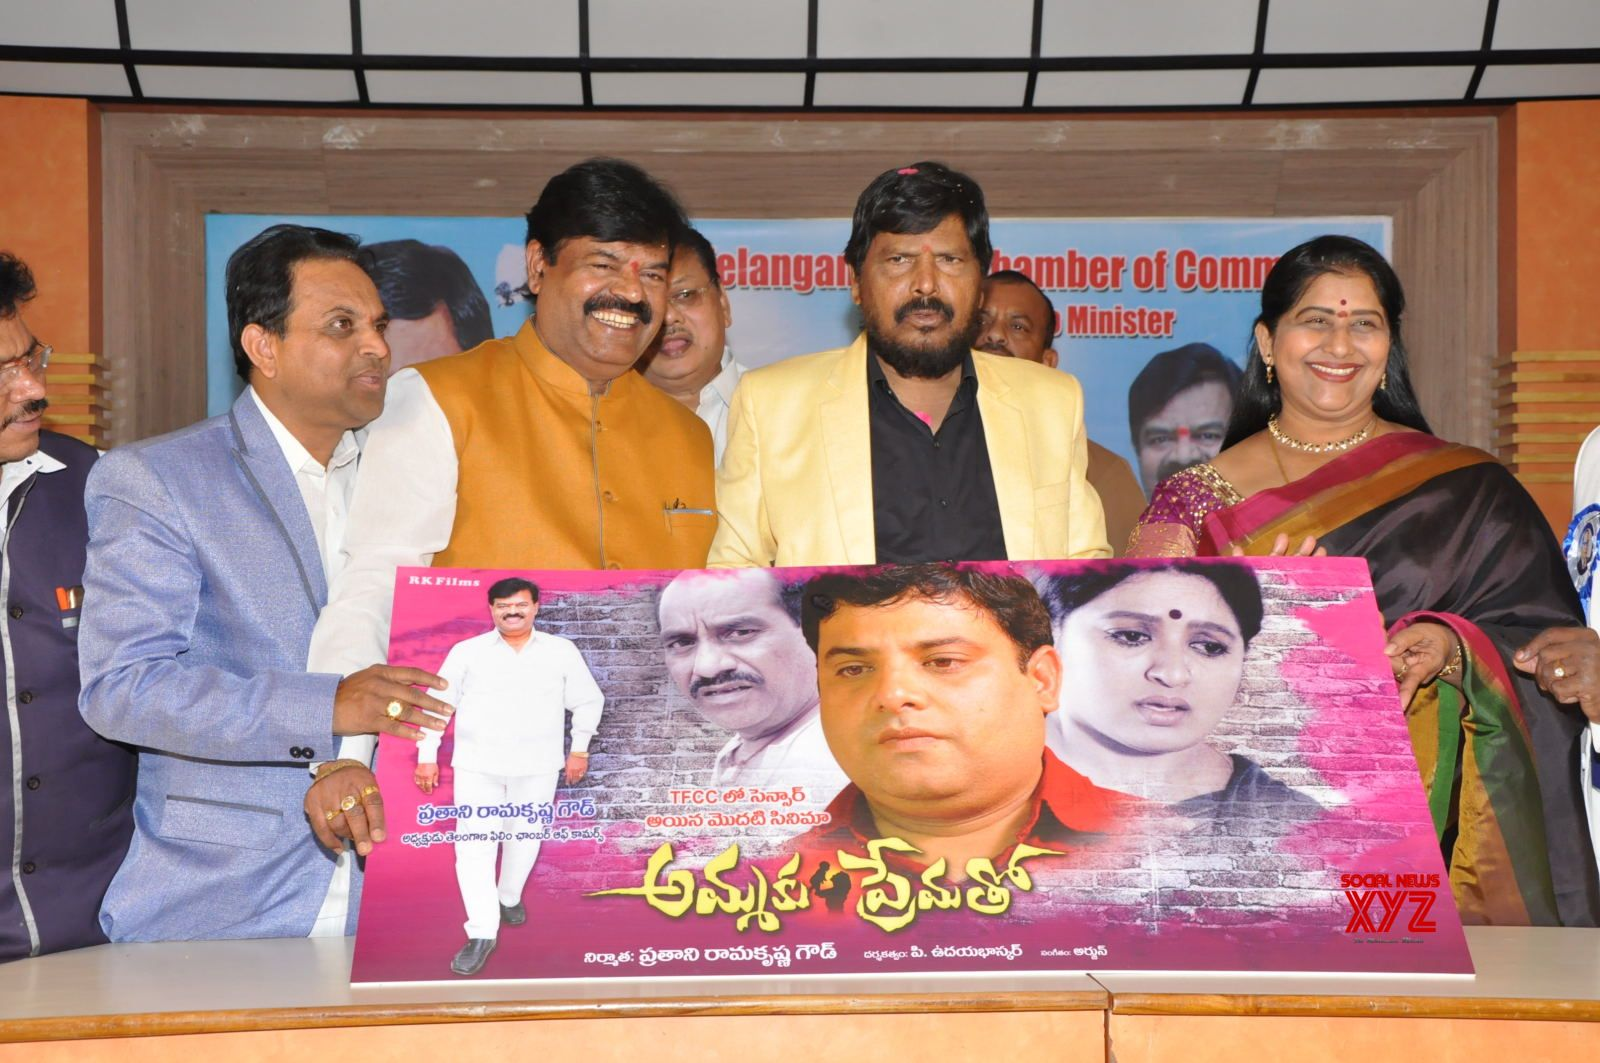 Amma Ku Prematho movie poster launched by Central Minister Ramdas Athawale